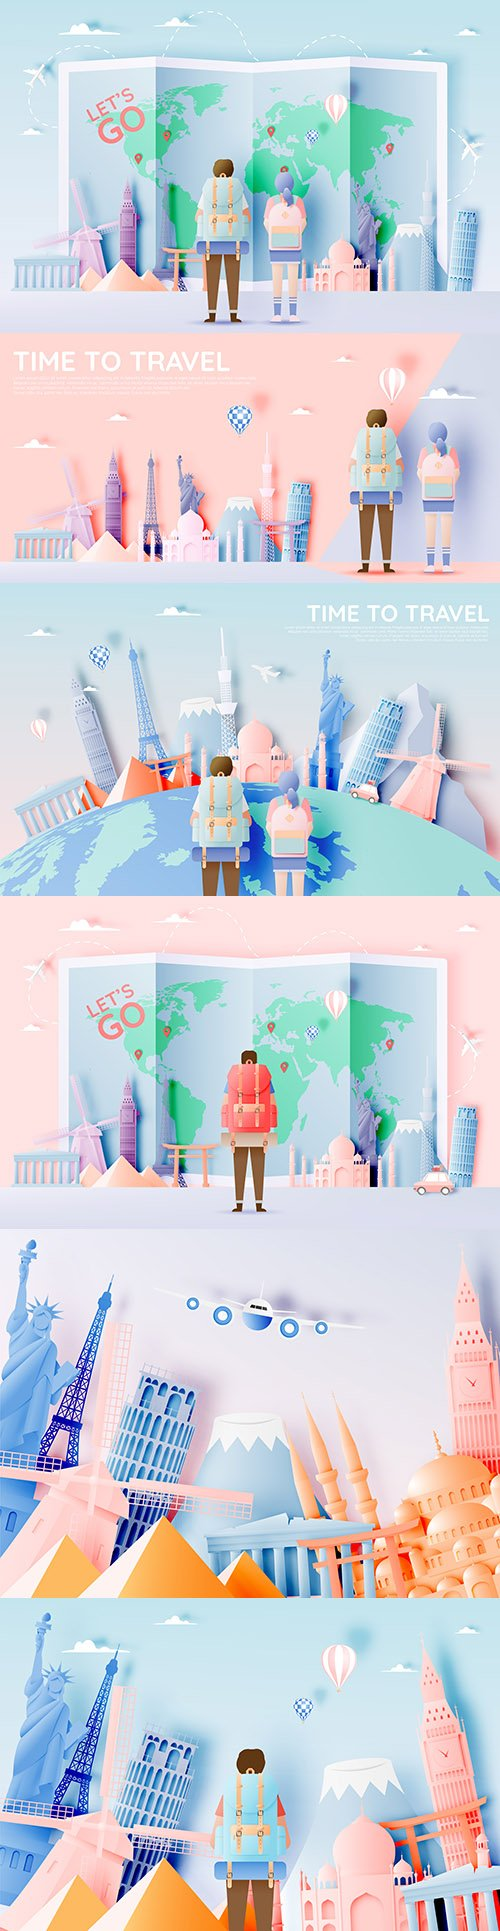 Travel different attractions in style paper art